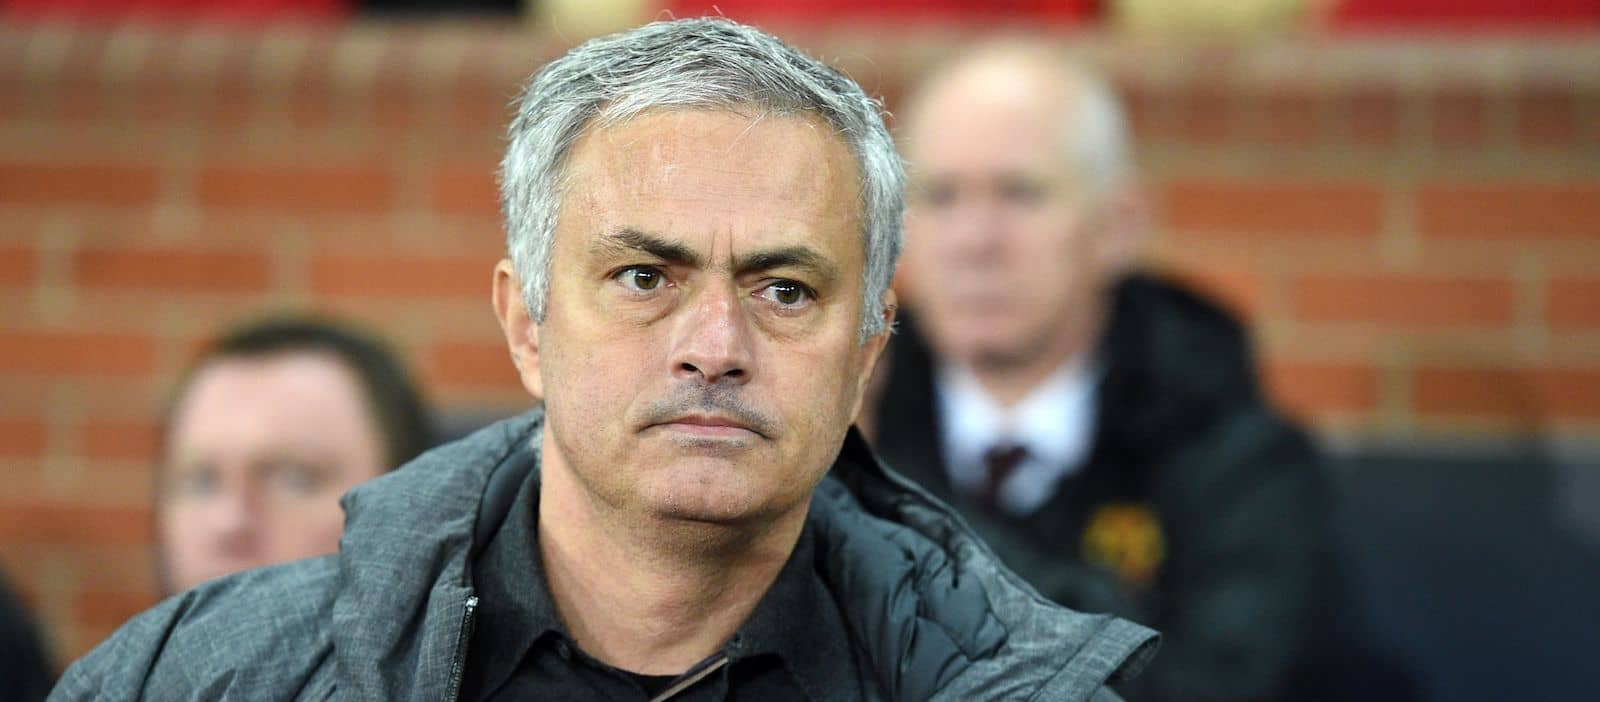 Jose Mourinho is refusing to accept failure and a lack of plan at Manchester United